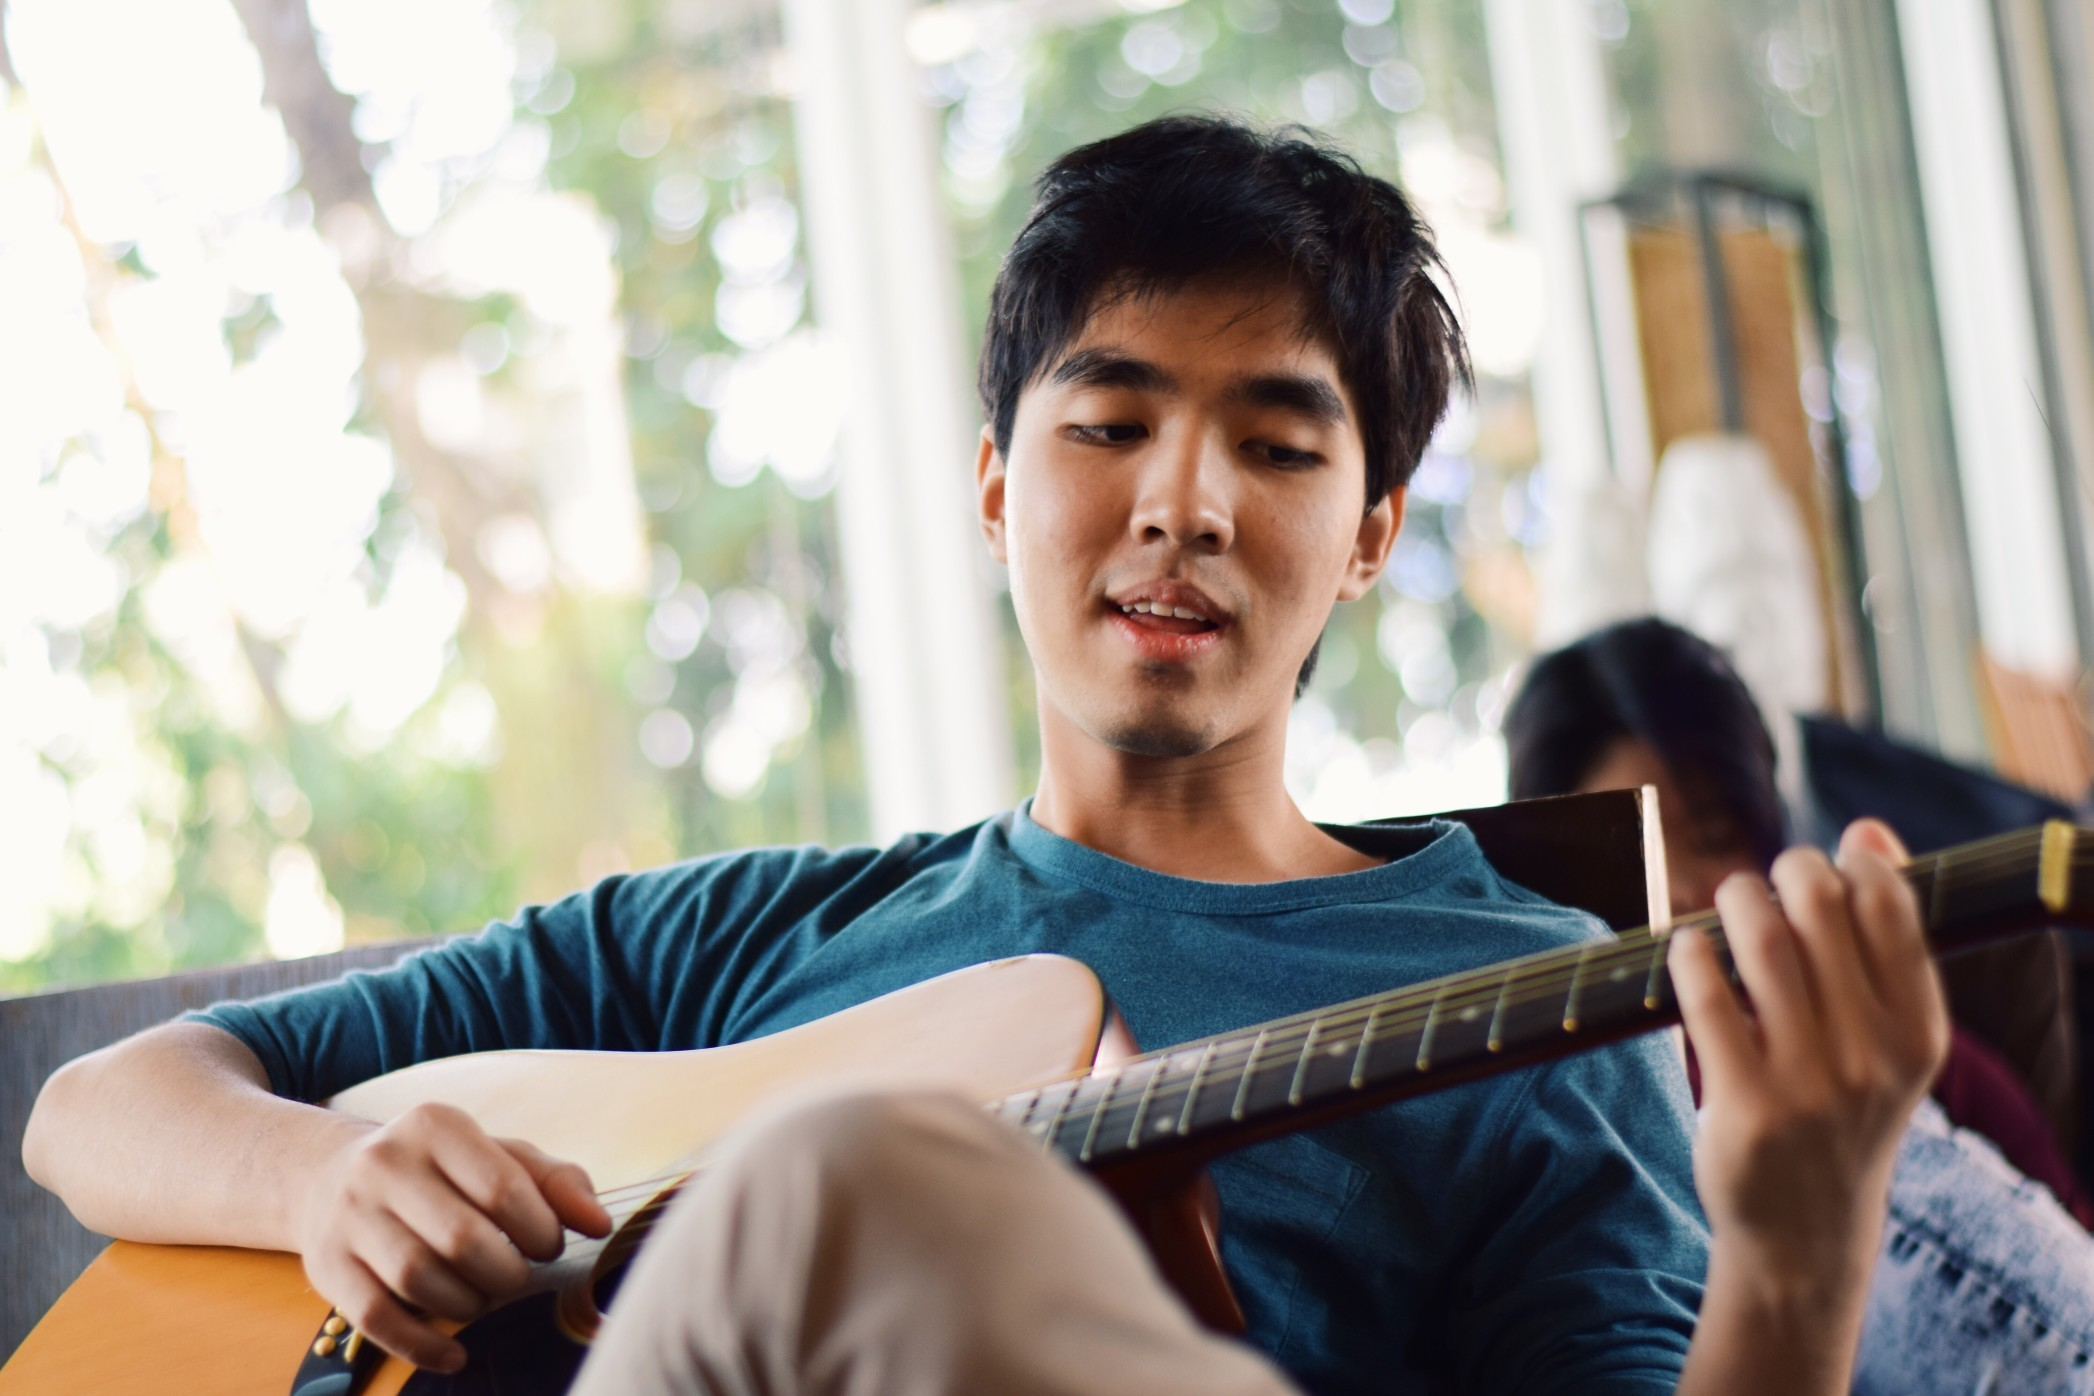 Young man playing the guitar inside